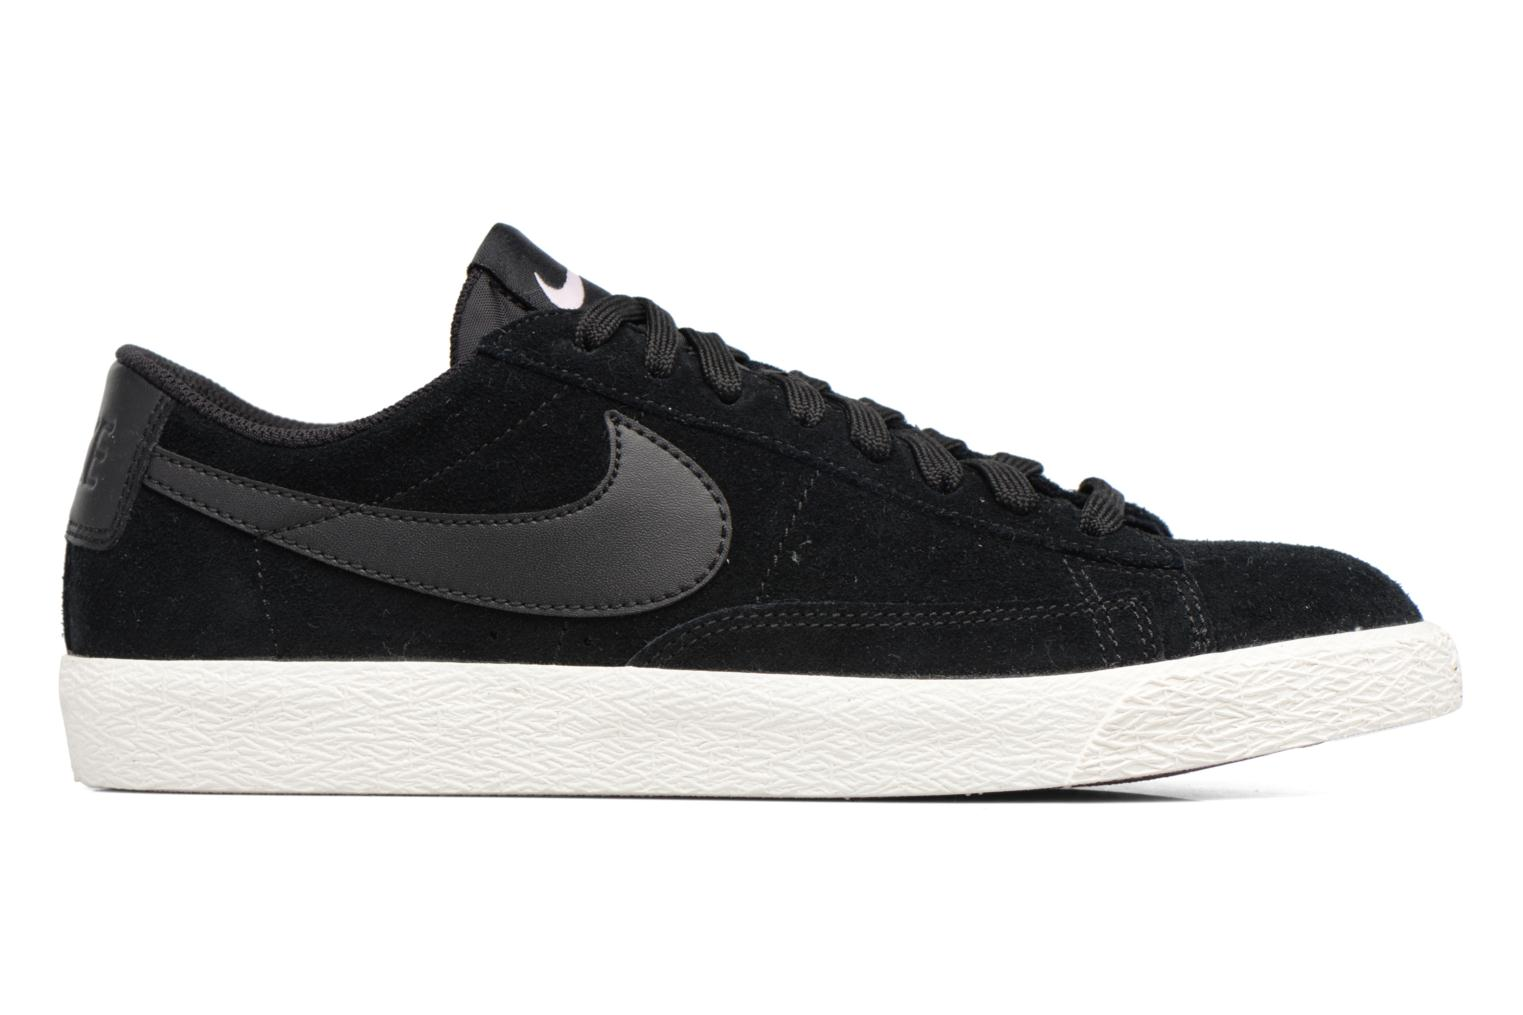 Blazer Low BLACK/BLACK-SAIL-ICED LILAC